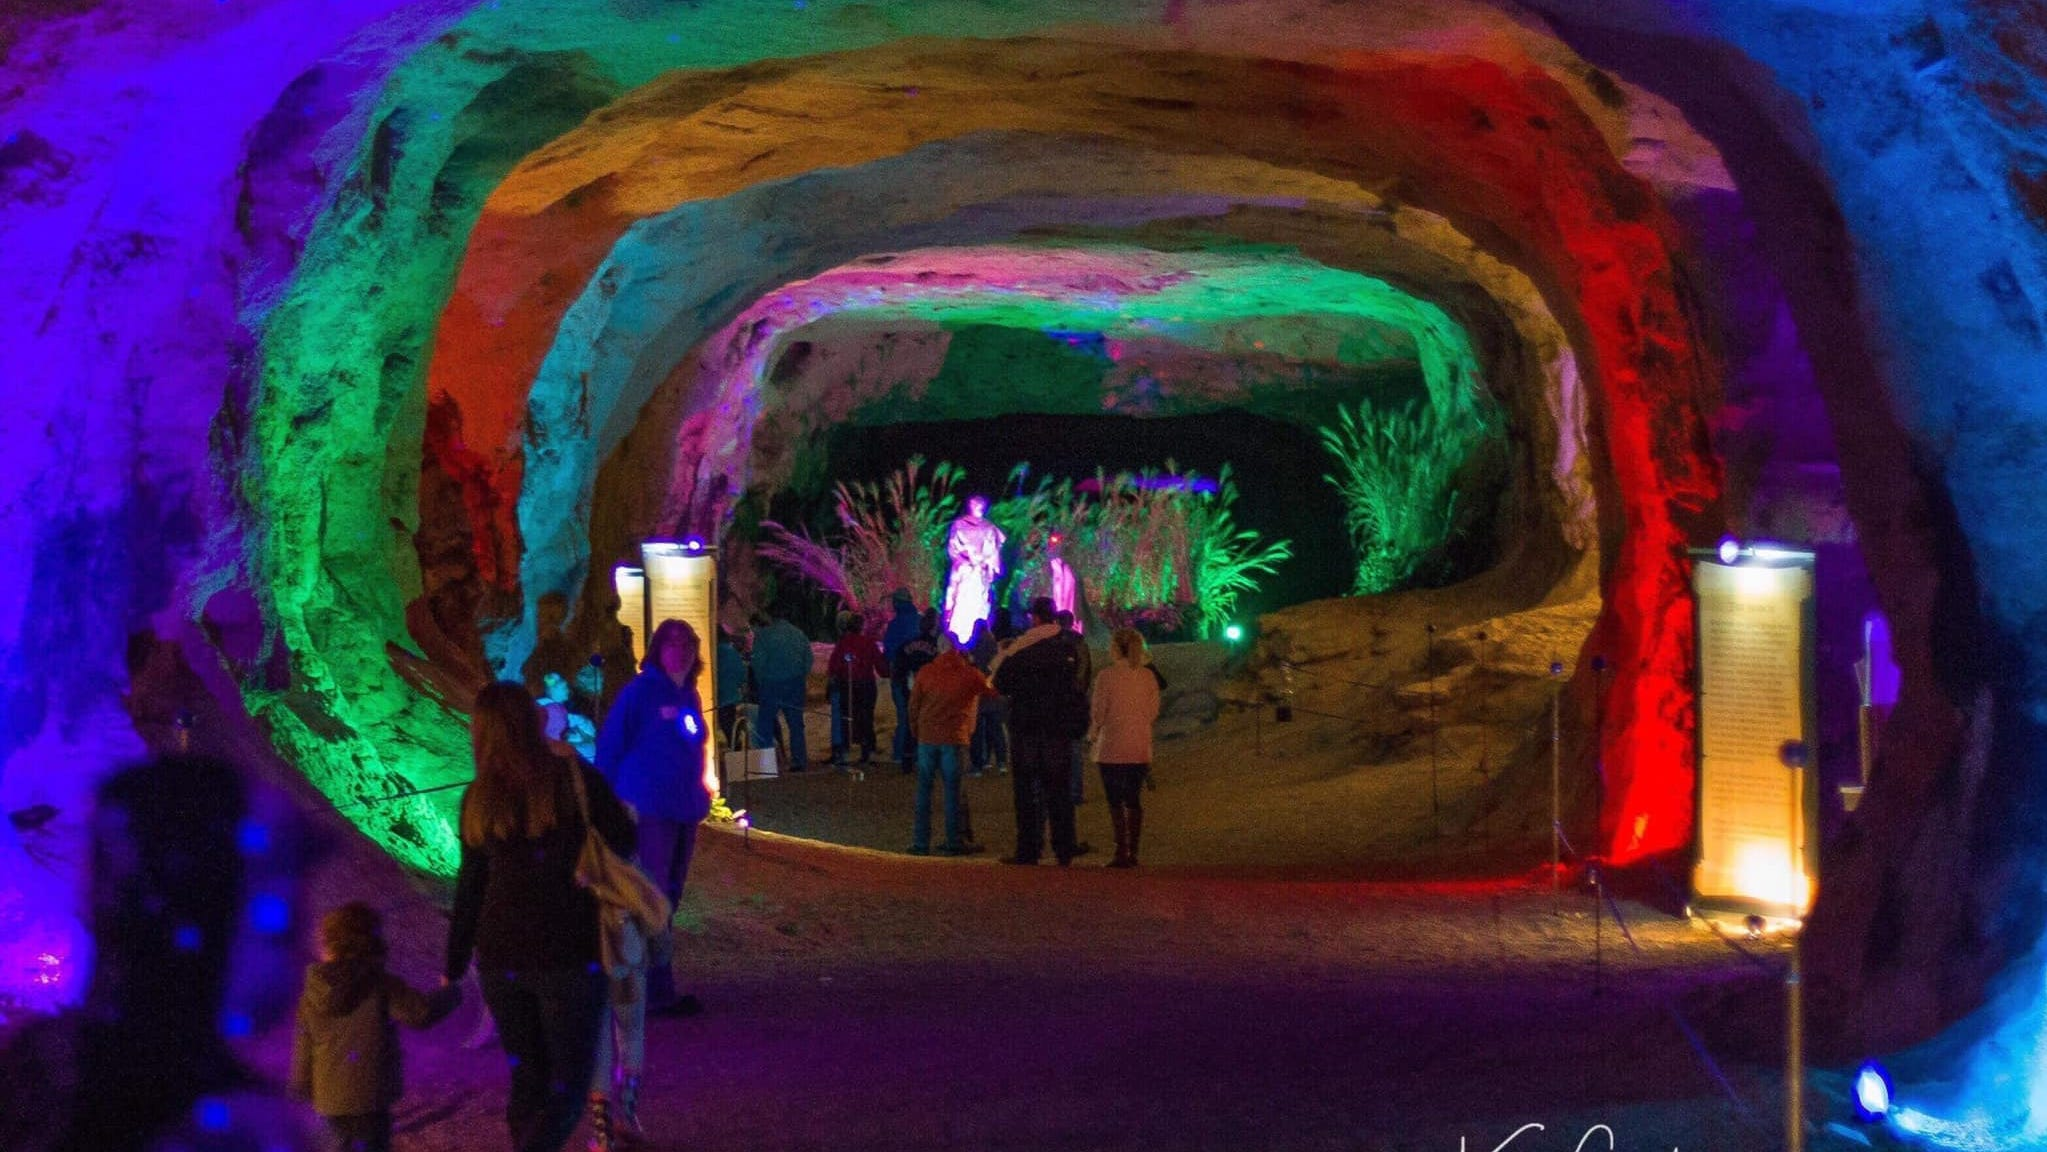 Eastern Ohio Christmas Cave 2020 Here is how you can see Ohio's free Christmas Cave light show